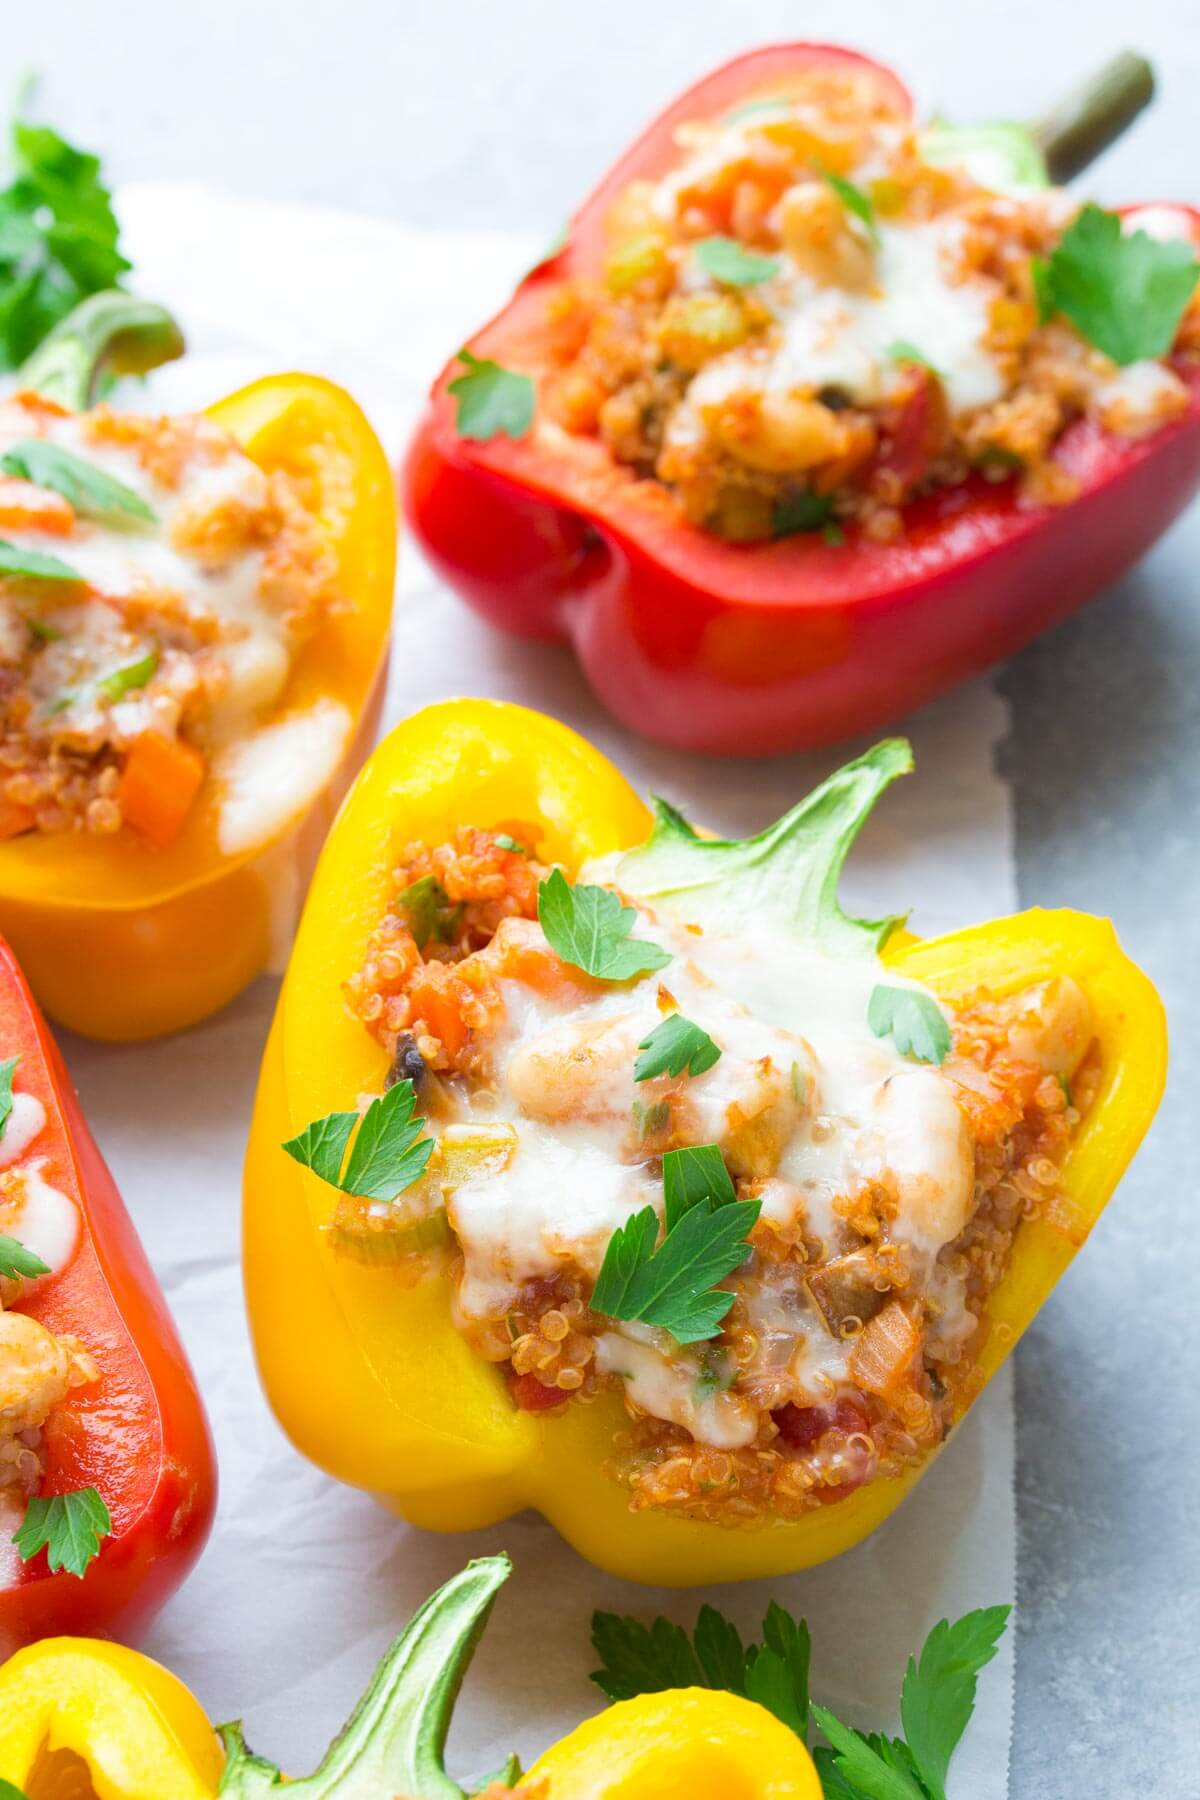 These cheesy Italian Quinoa Stuffed Peppers take stuffed peppers to a whole new level! They're a healthy, protein-packed vegetarian meal! | www.kristineskitchenblog.com